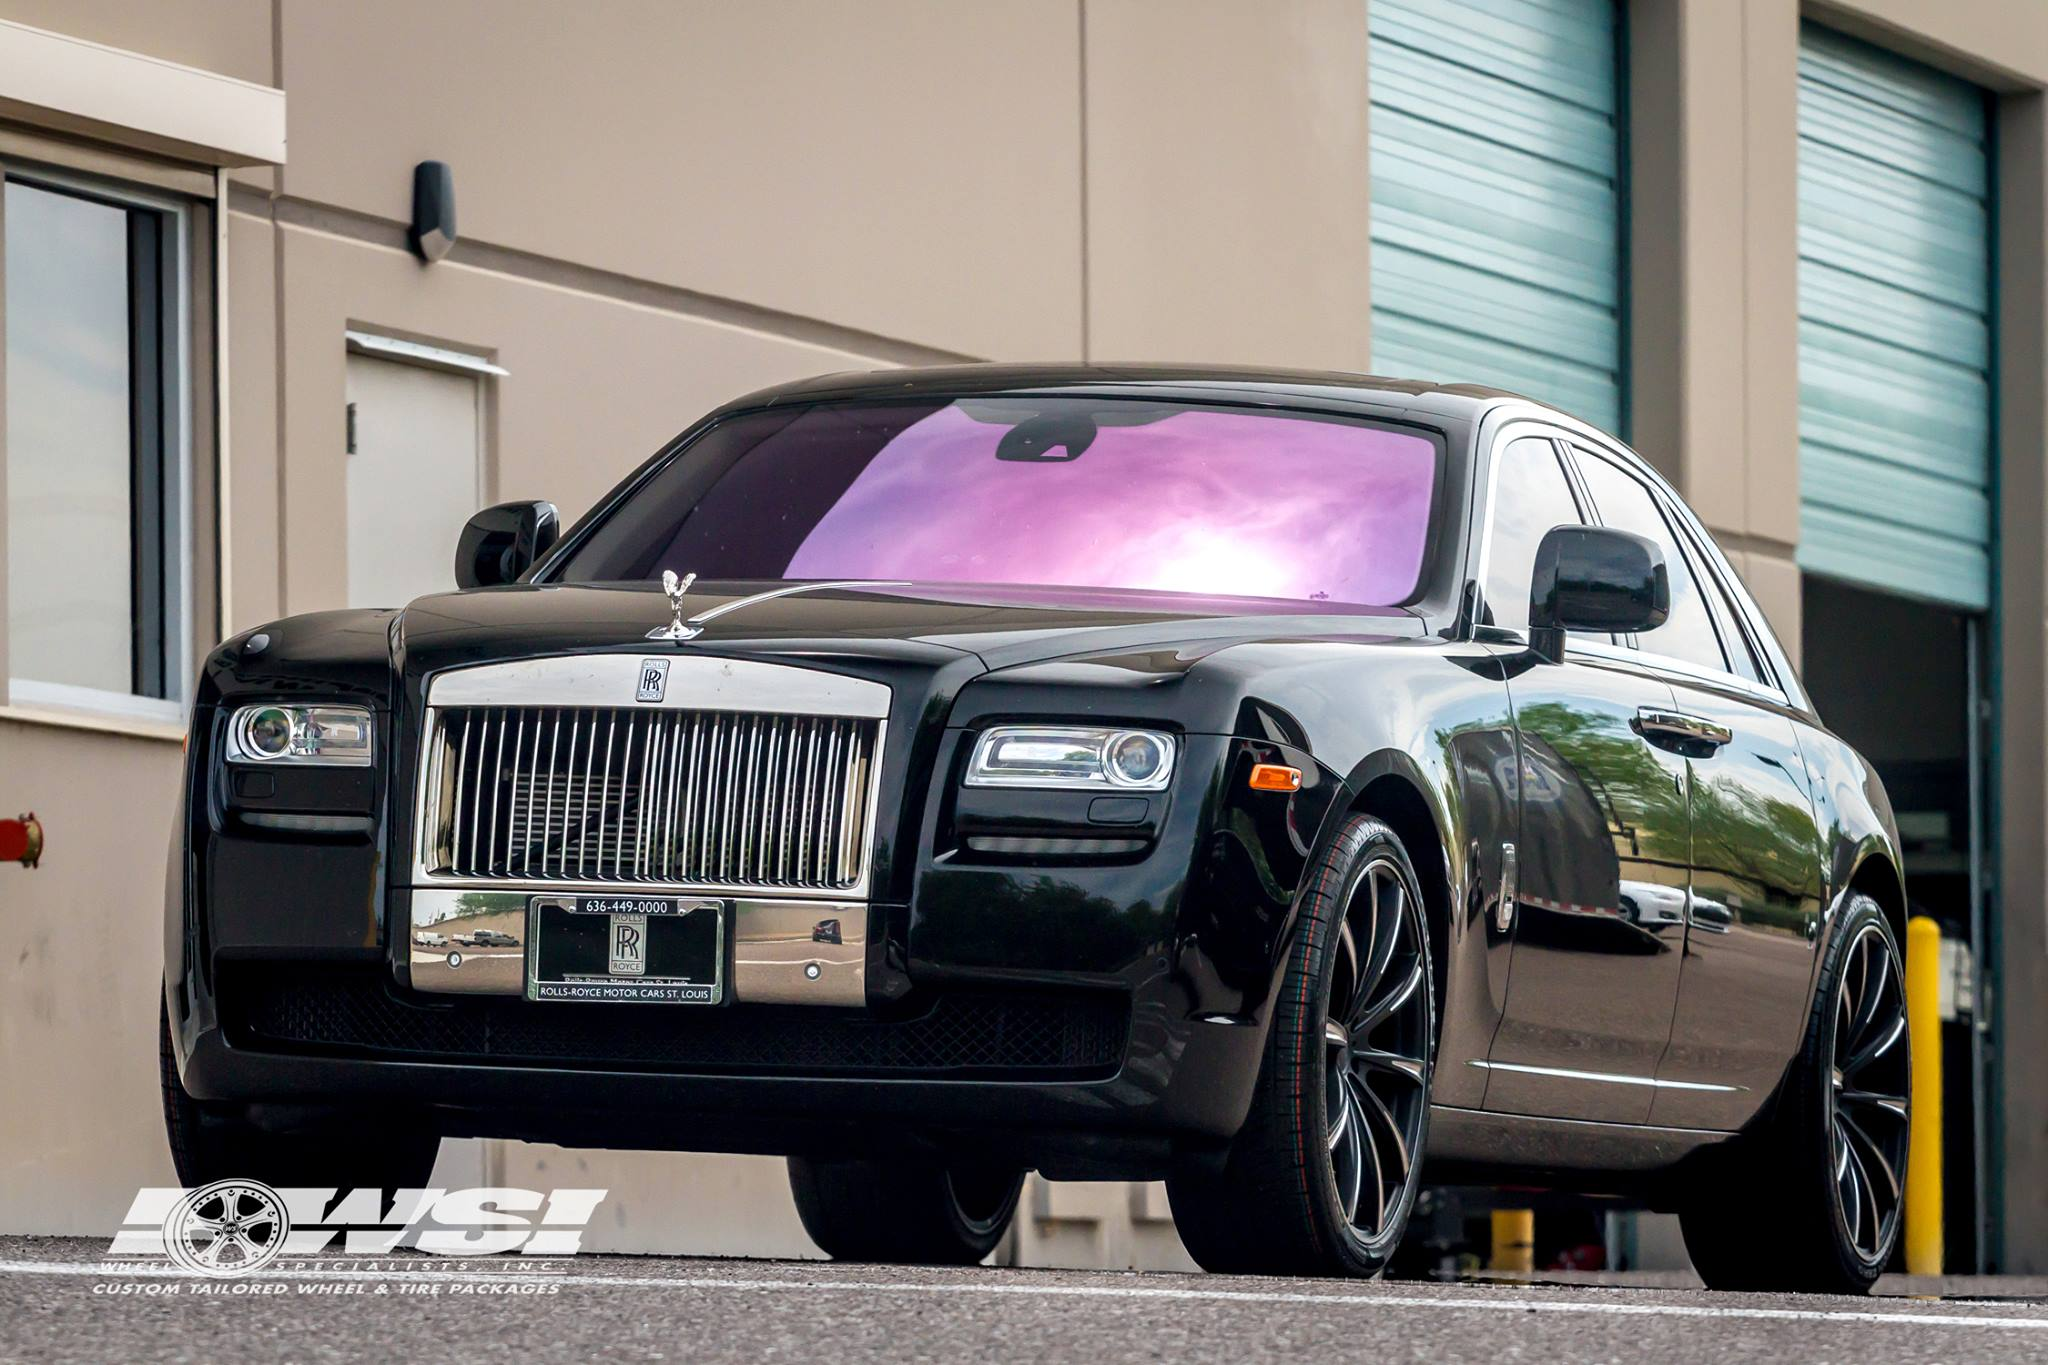 Gianelle Cuba-10 Black on Rolls-Royce Ghost